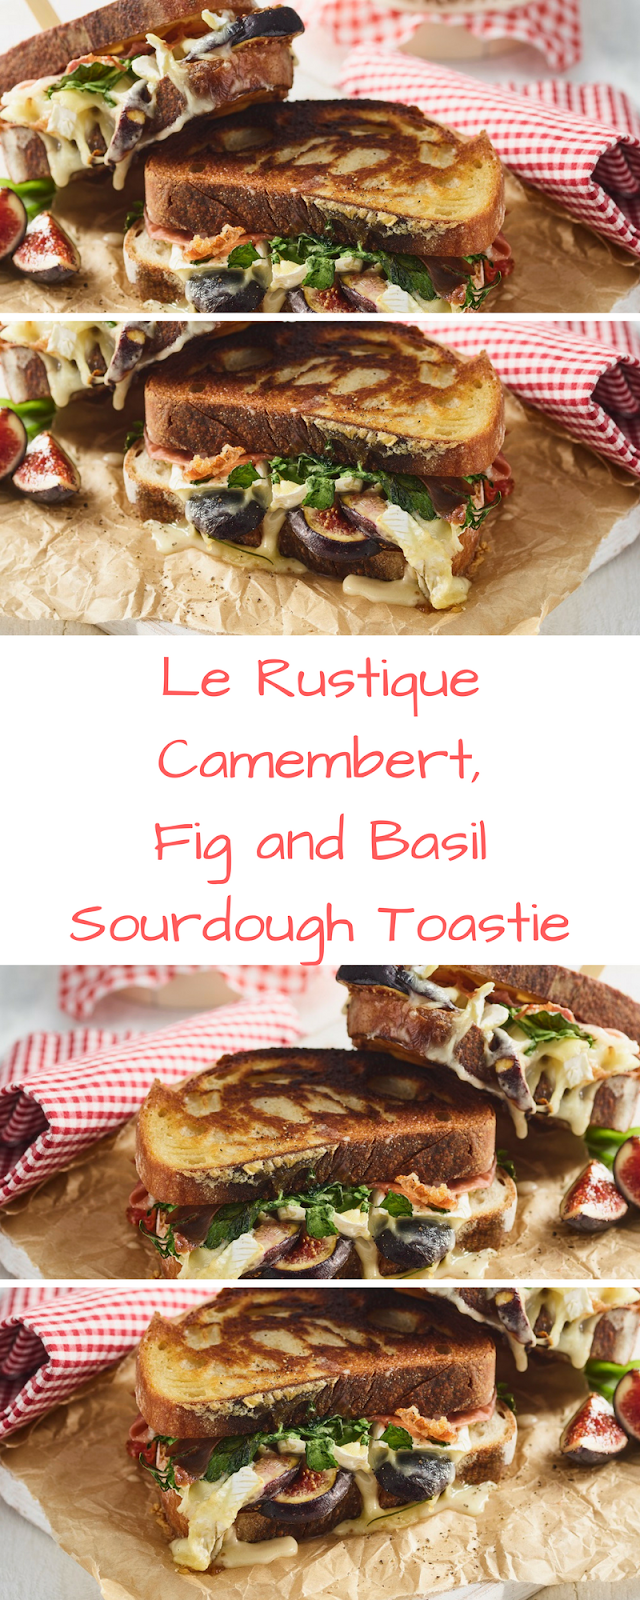 Le Rustique Camembert, Fig And Basil Sourdough Toastie